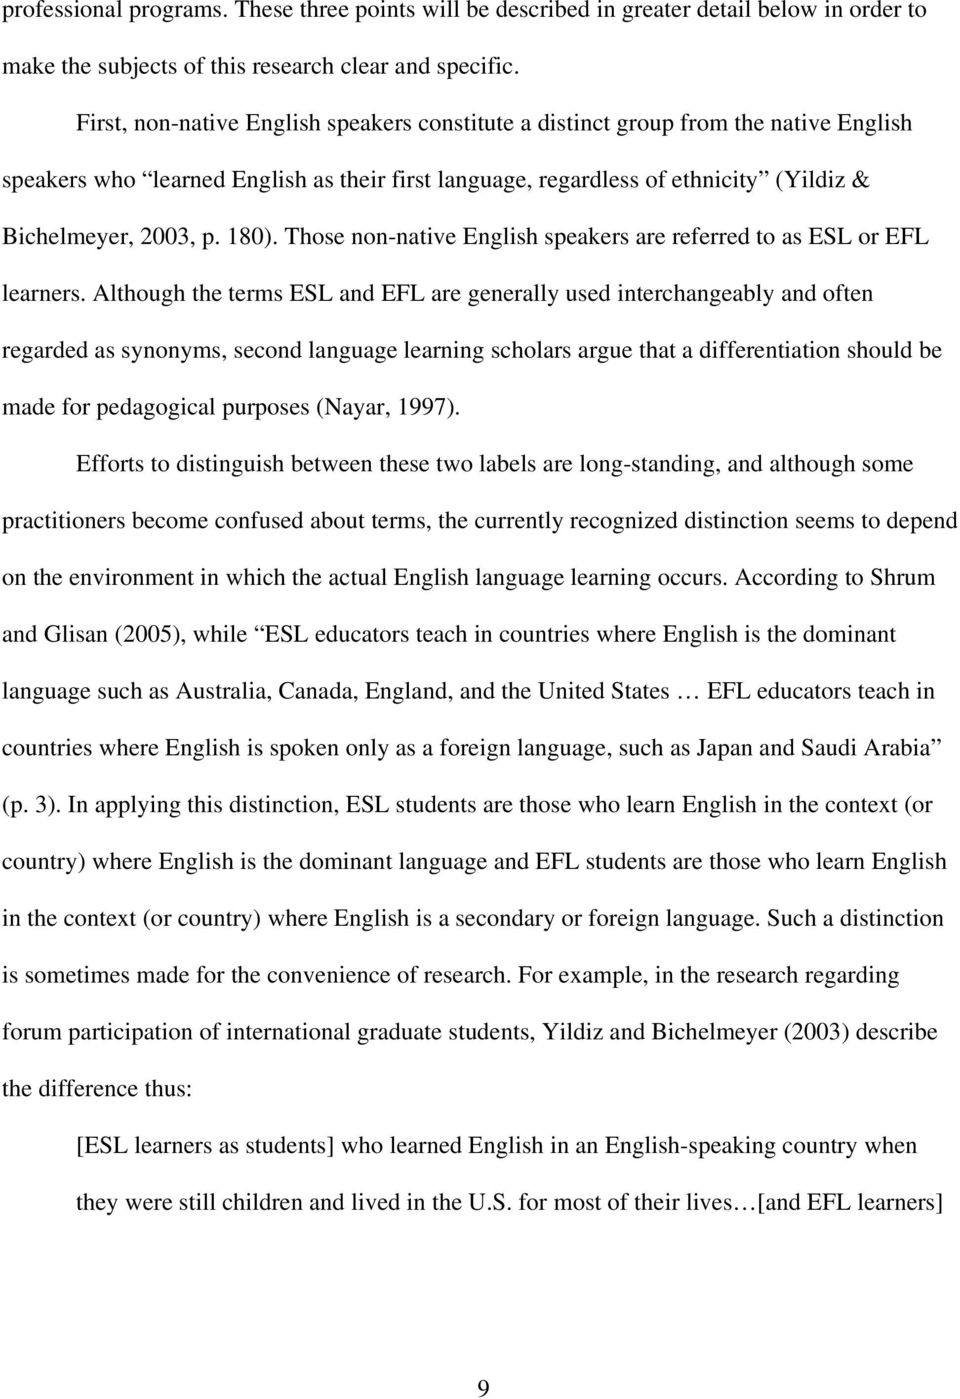 180). Those non-native English speakers are referred to as ESL or EFL learners.